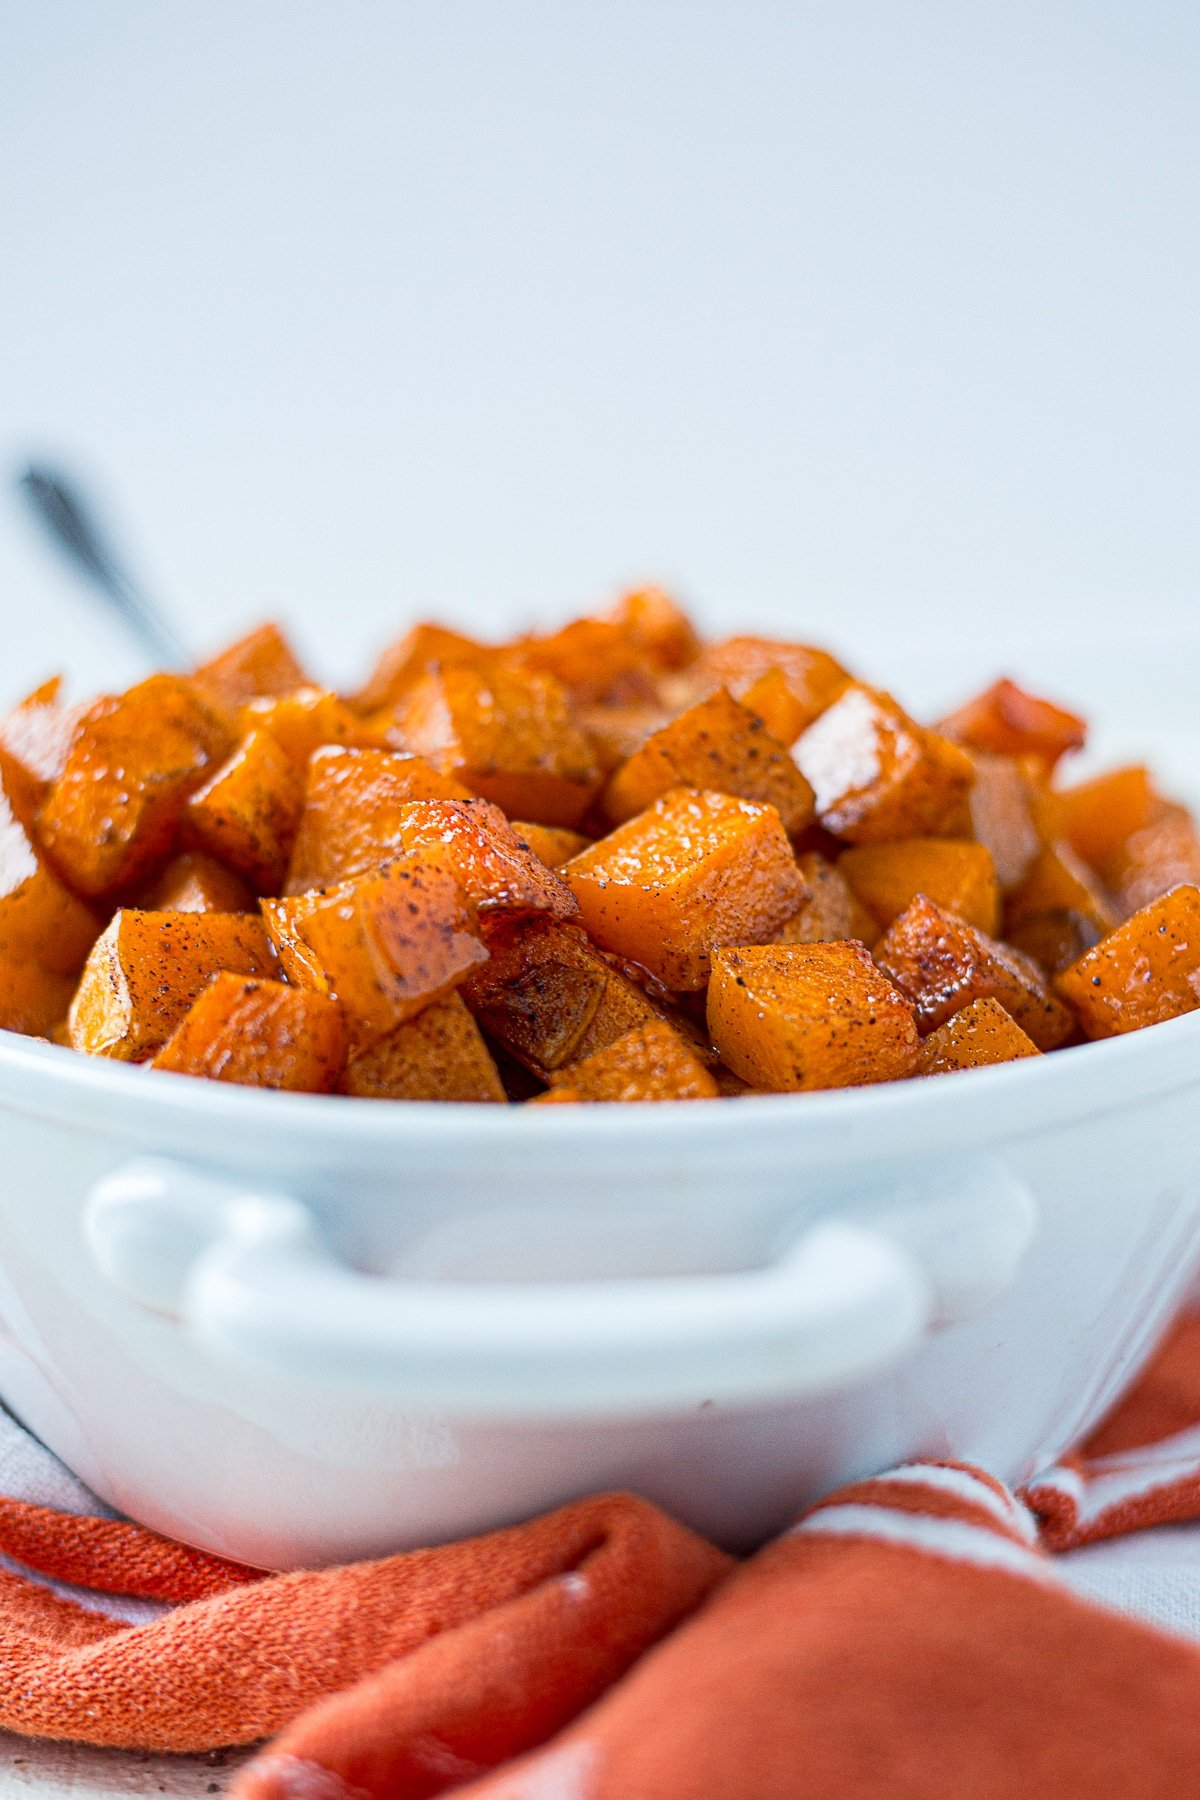 Roasted butternut squash cooked with cinnamon and maple syrup piled  high in a white bowl